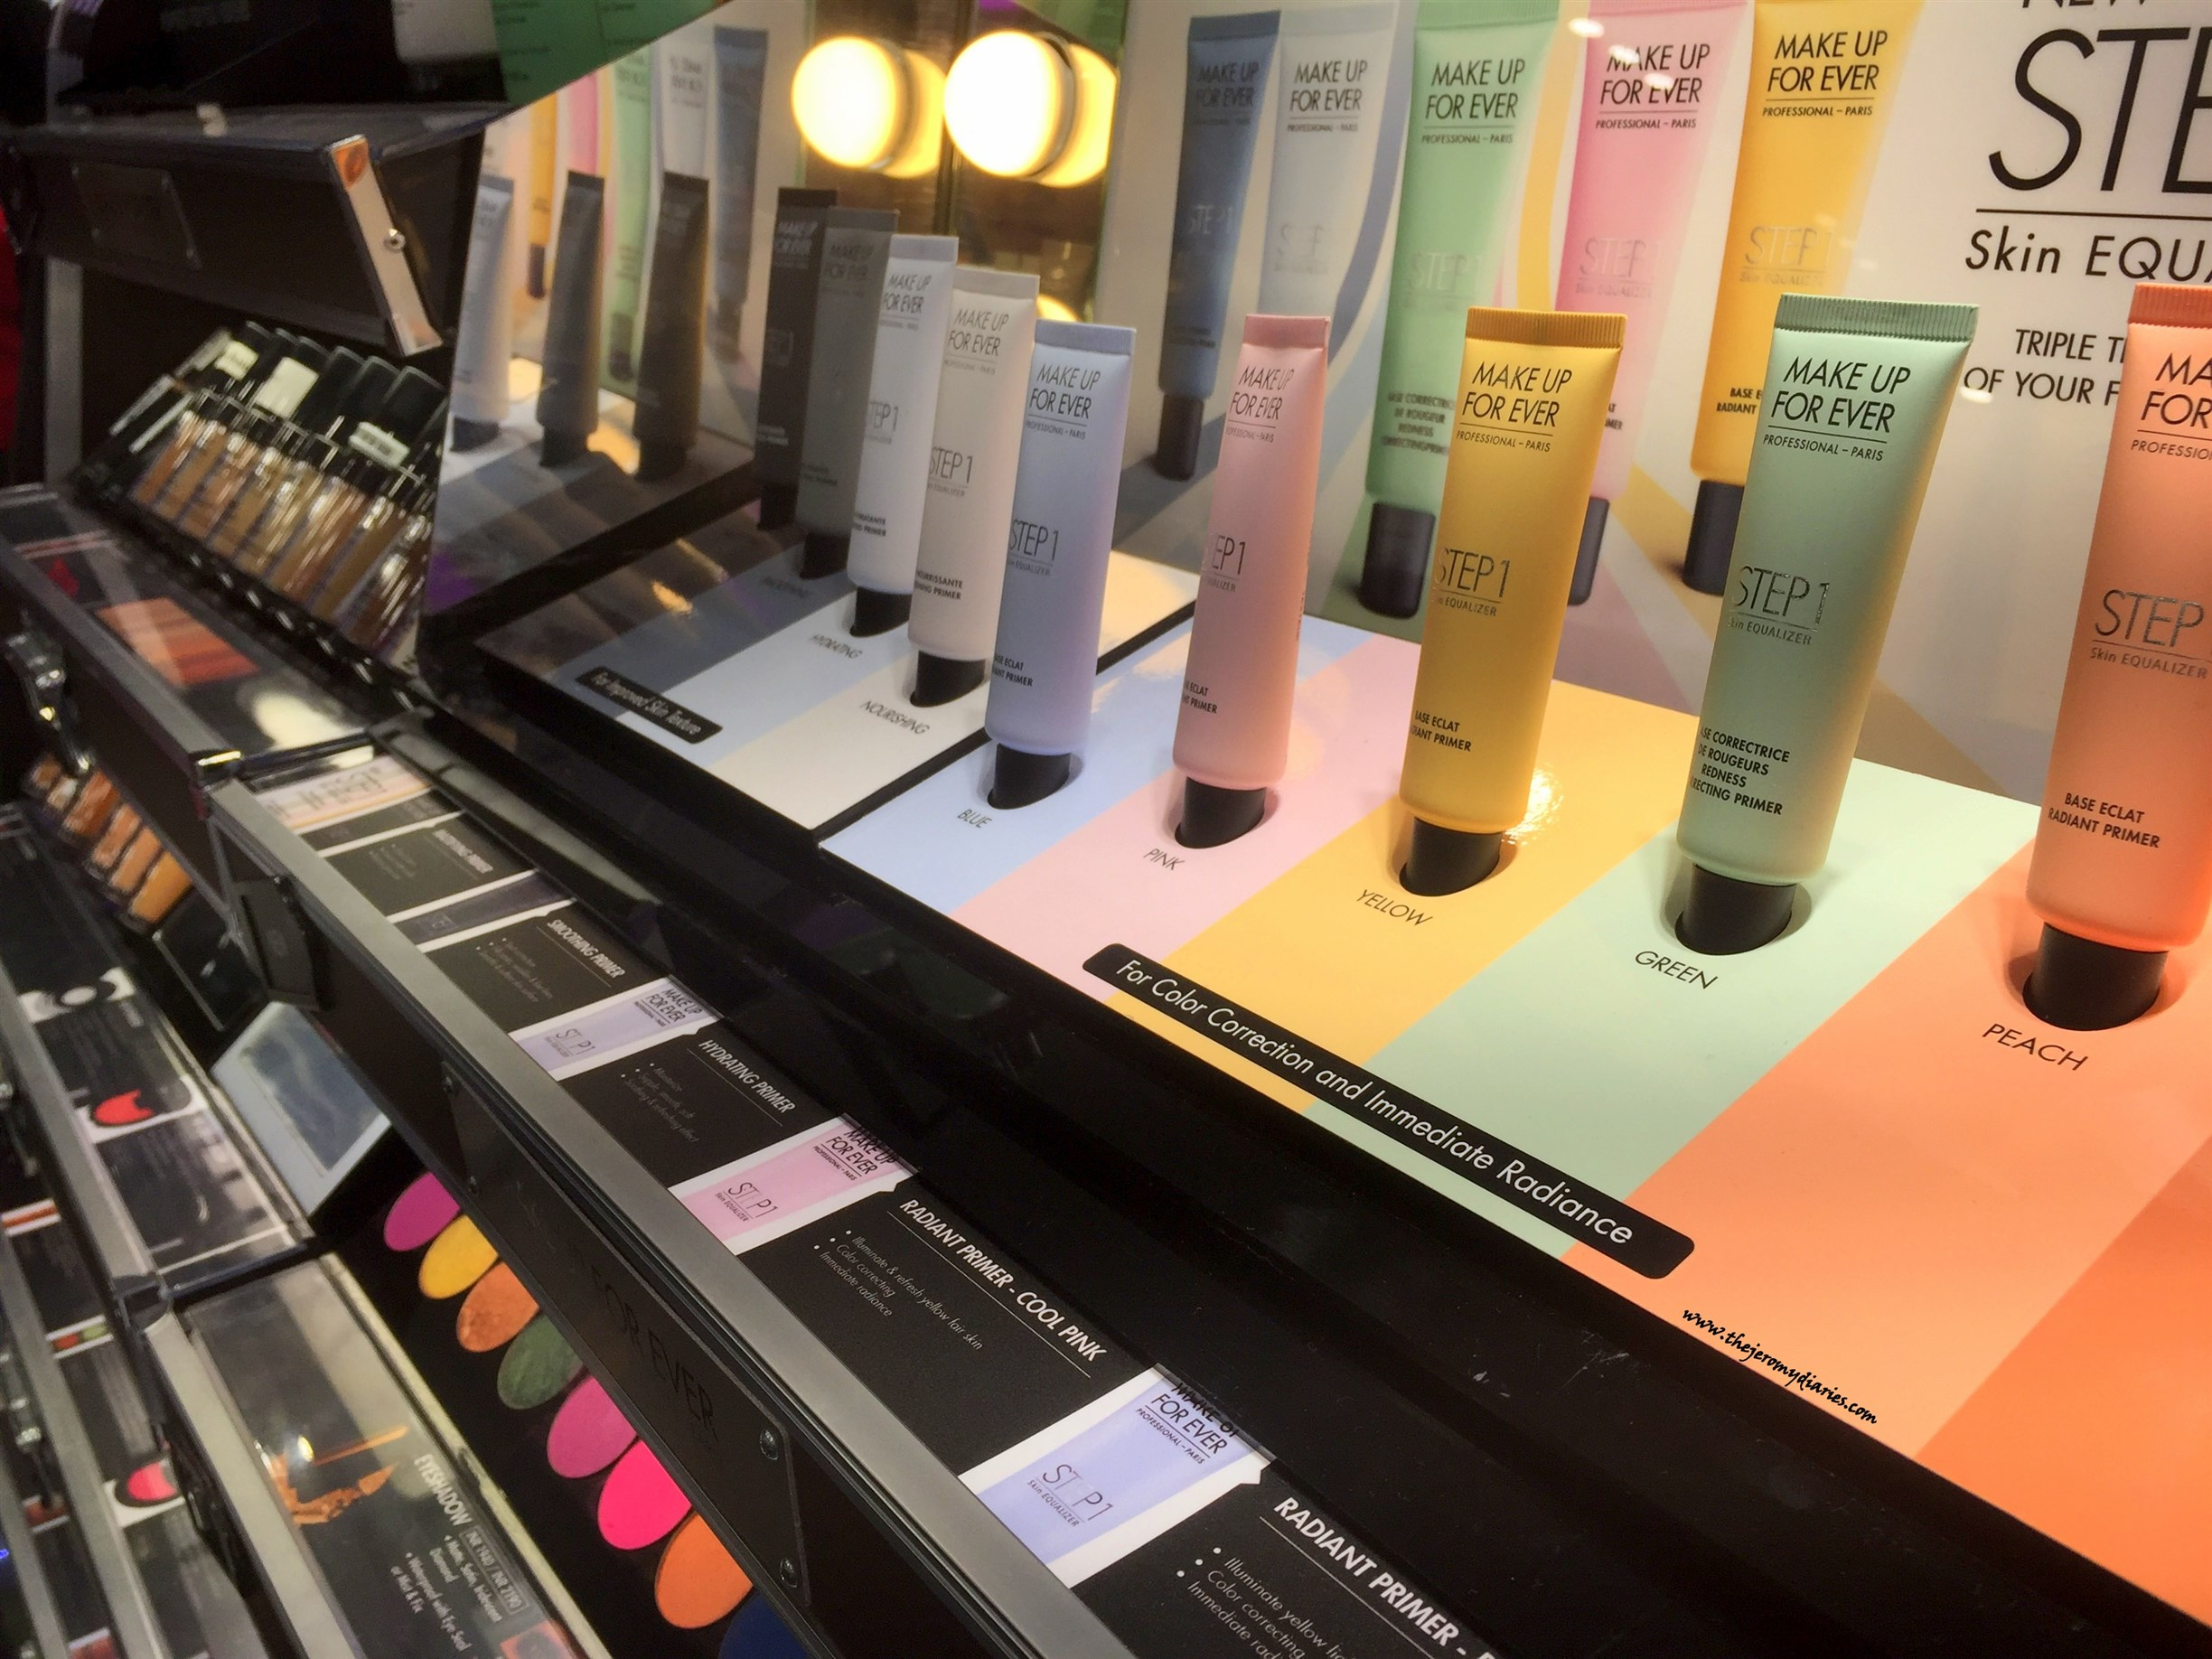 make up forever primers the jeromy diaries sephora in bangalore (2448 x 1836)